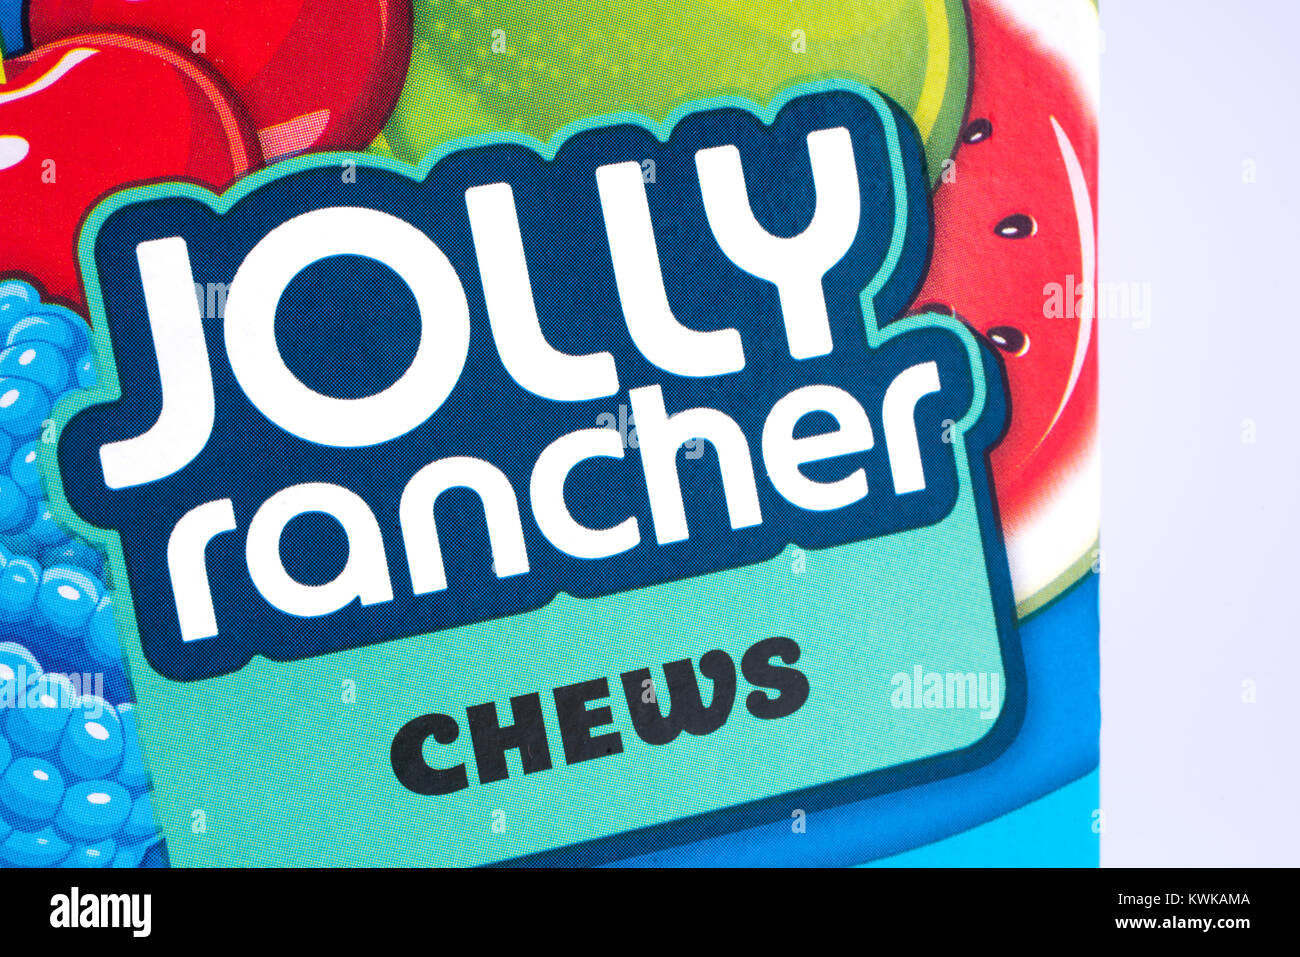 LONDON, UK - DECEMBER 18TH 2017: A close-up of the Jolly Rancher logo, on 18th December 2017. - Stock Image